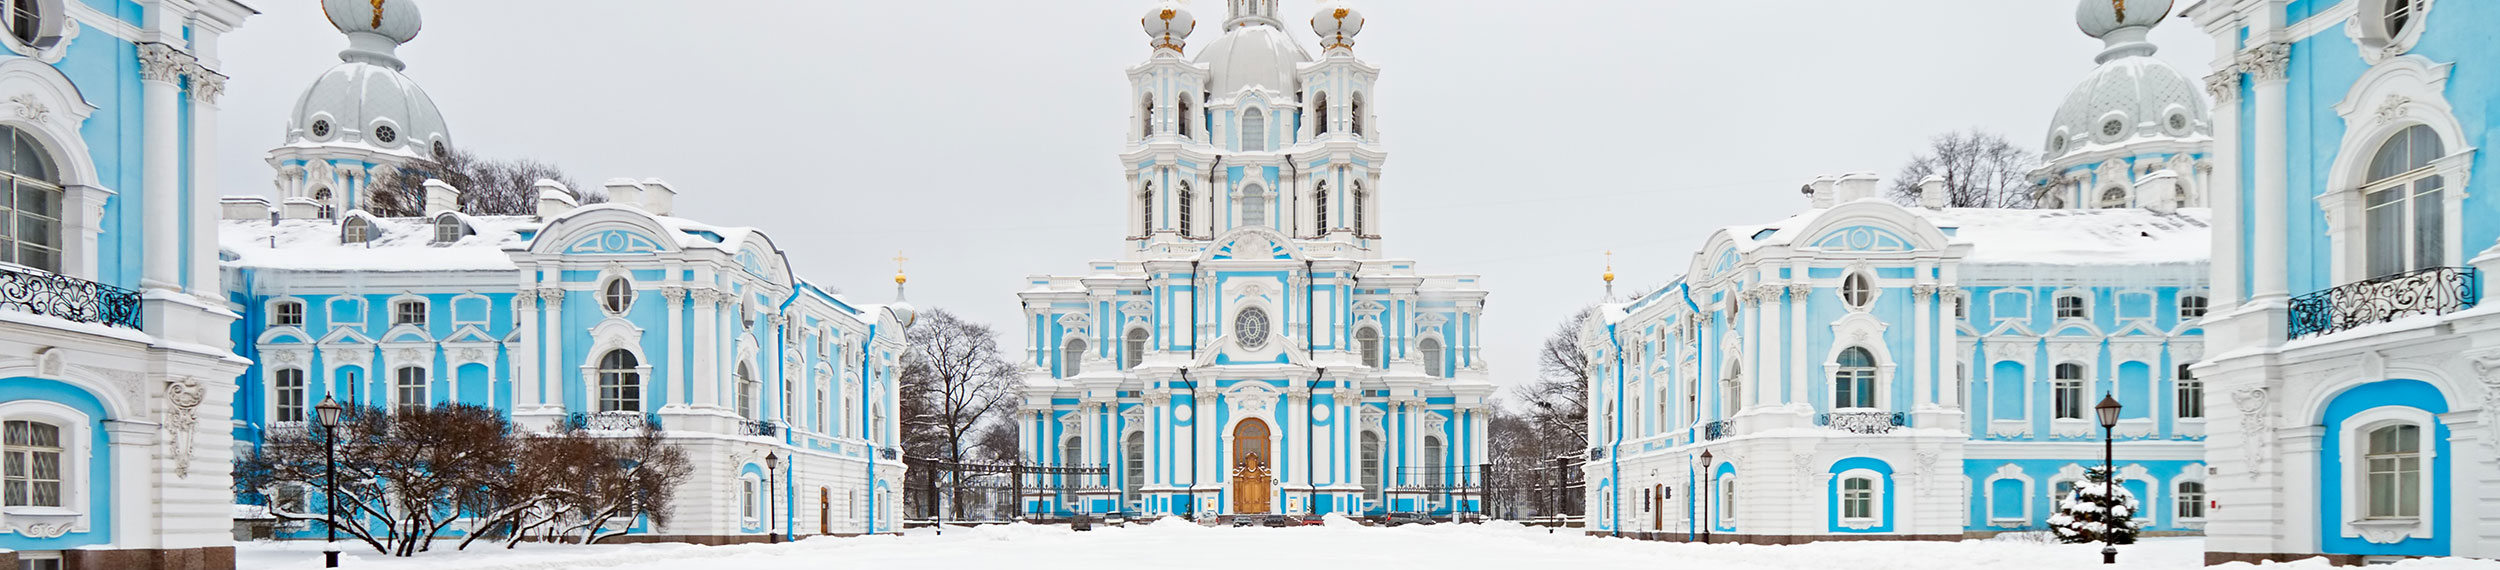 The light blue and white cathedral and surrounding buildings of Smolny Cathedral covered in snow in St. Petersburg, Russia.